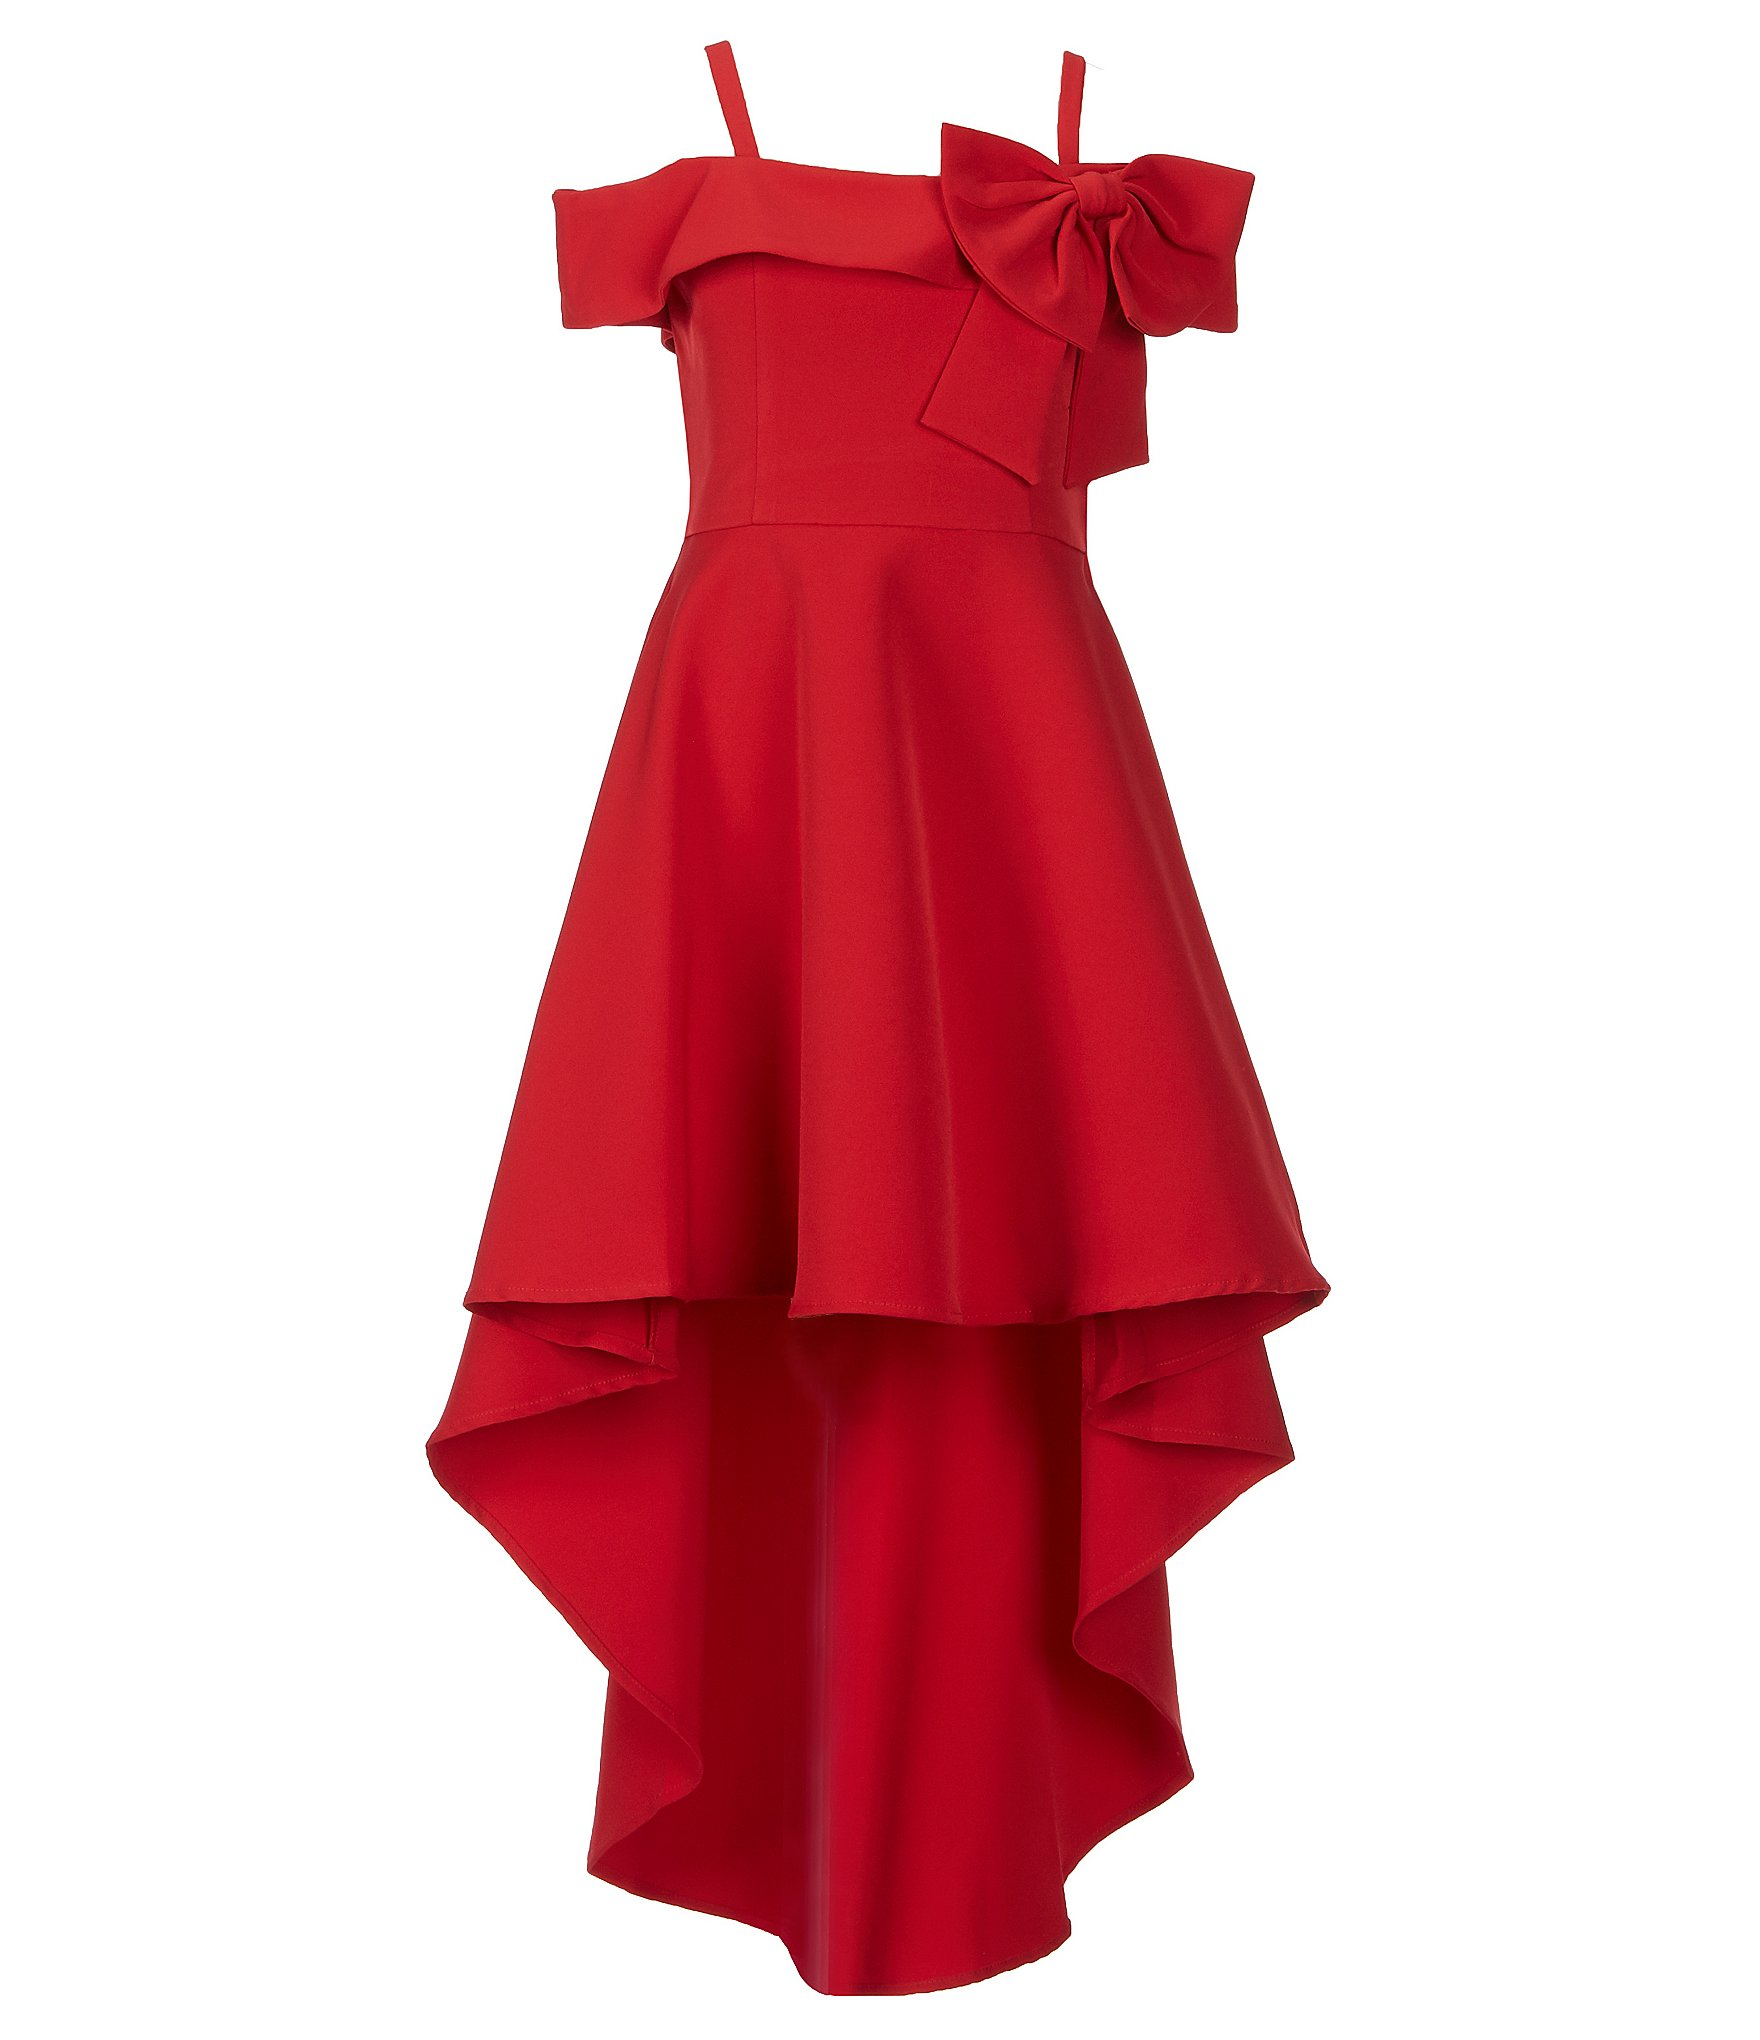 Red Girls' Dresses | Dillard's